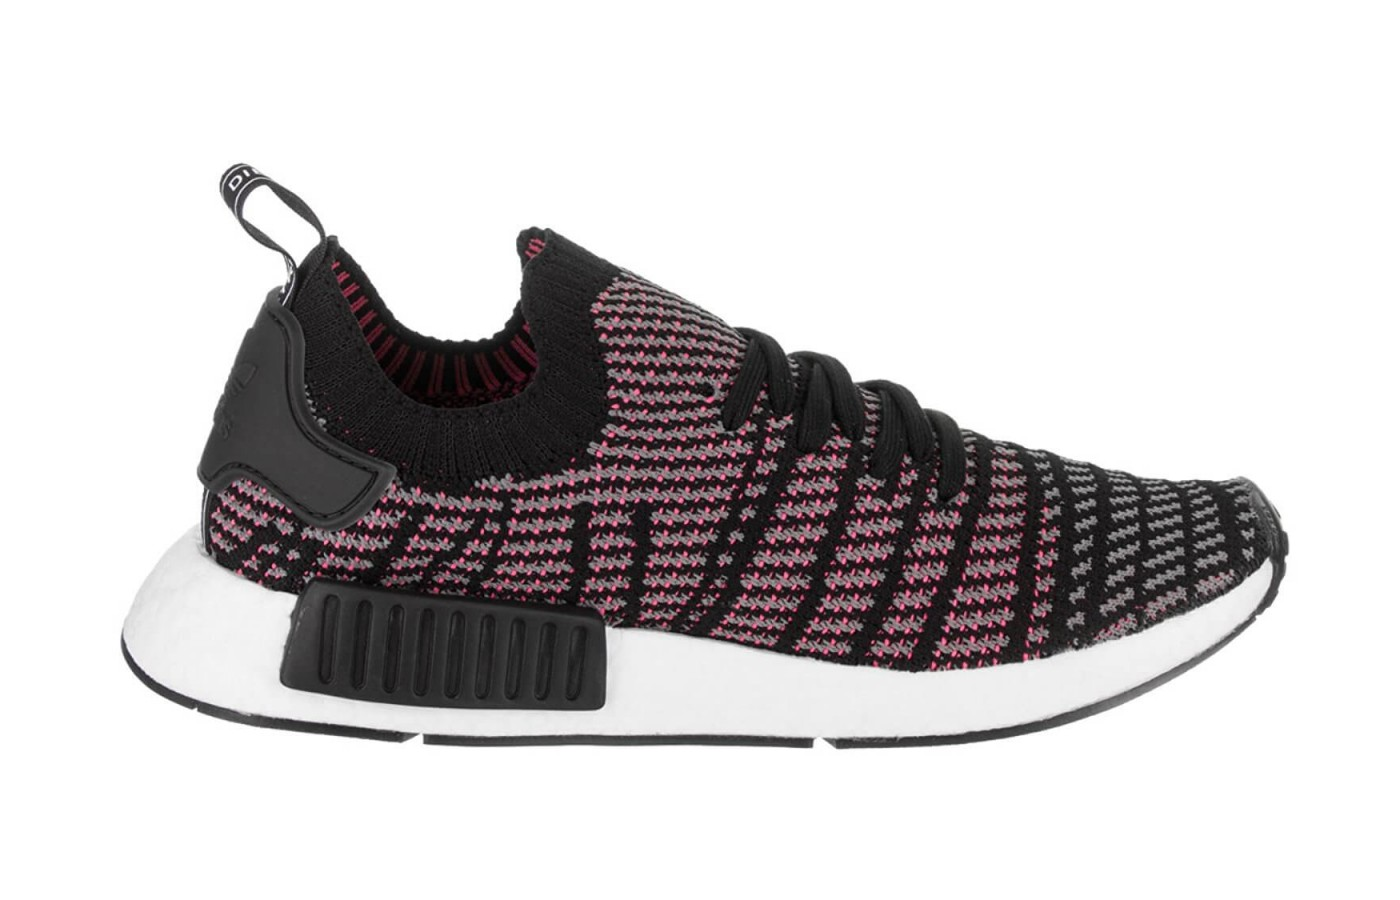 c1cd80c2a2053 ... Primeknit upper  The Adidas NMD R1 Stlt Primeknit features a Boost  midsole ...